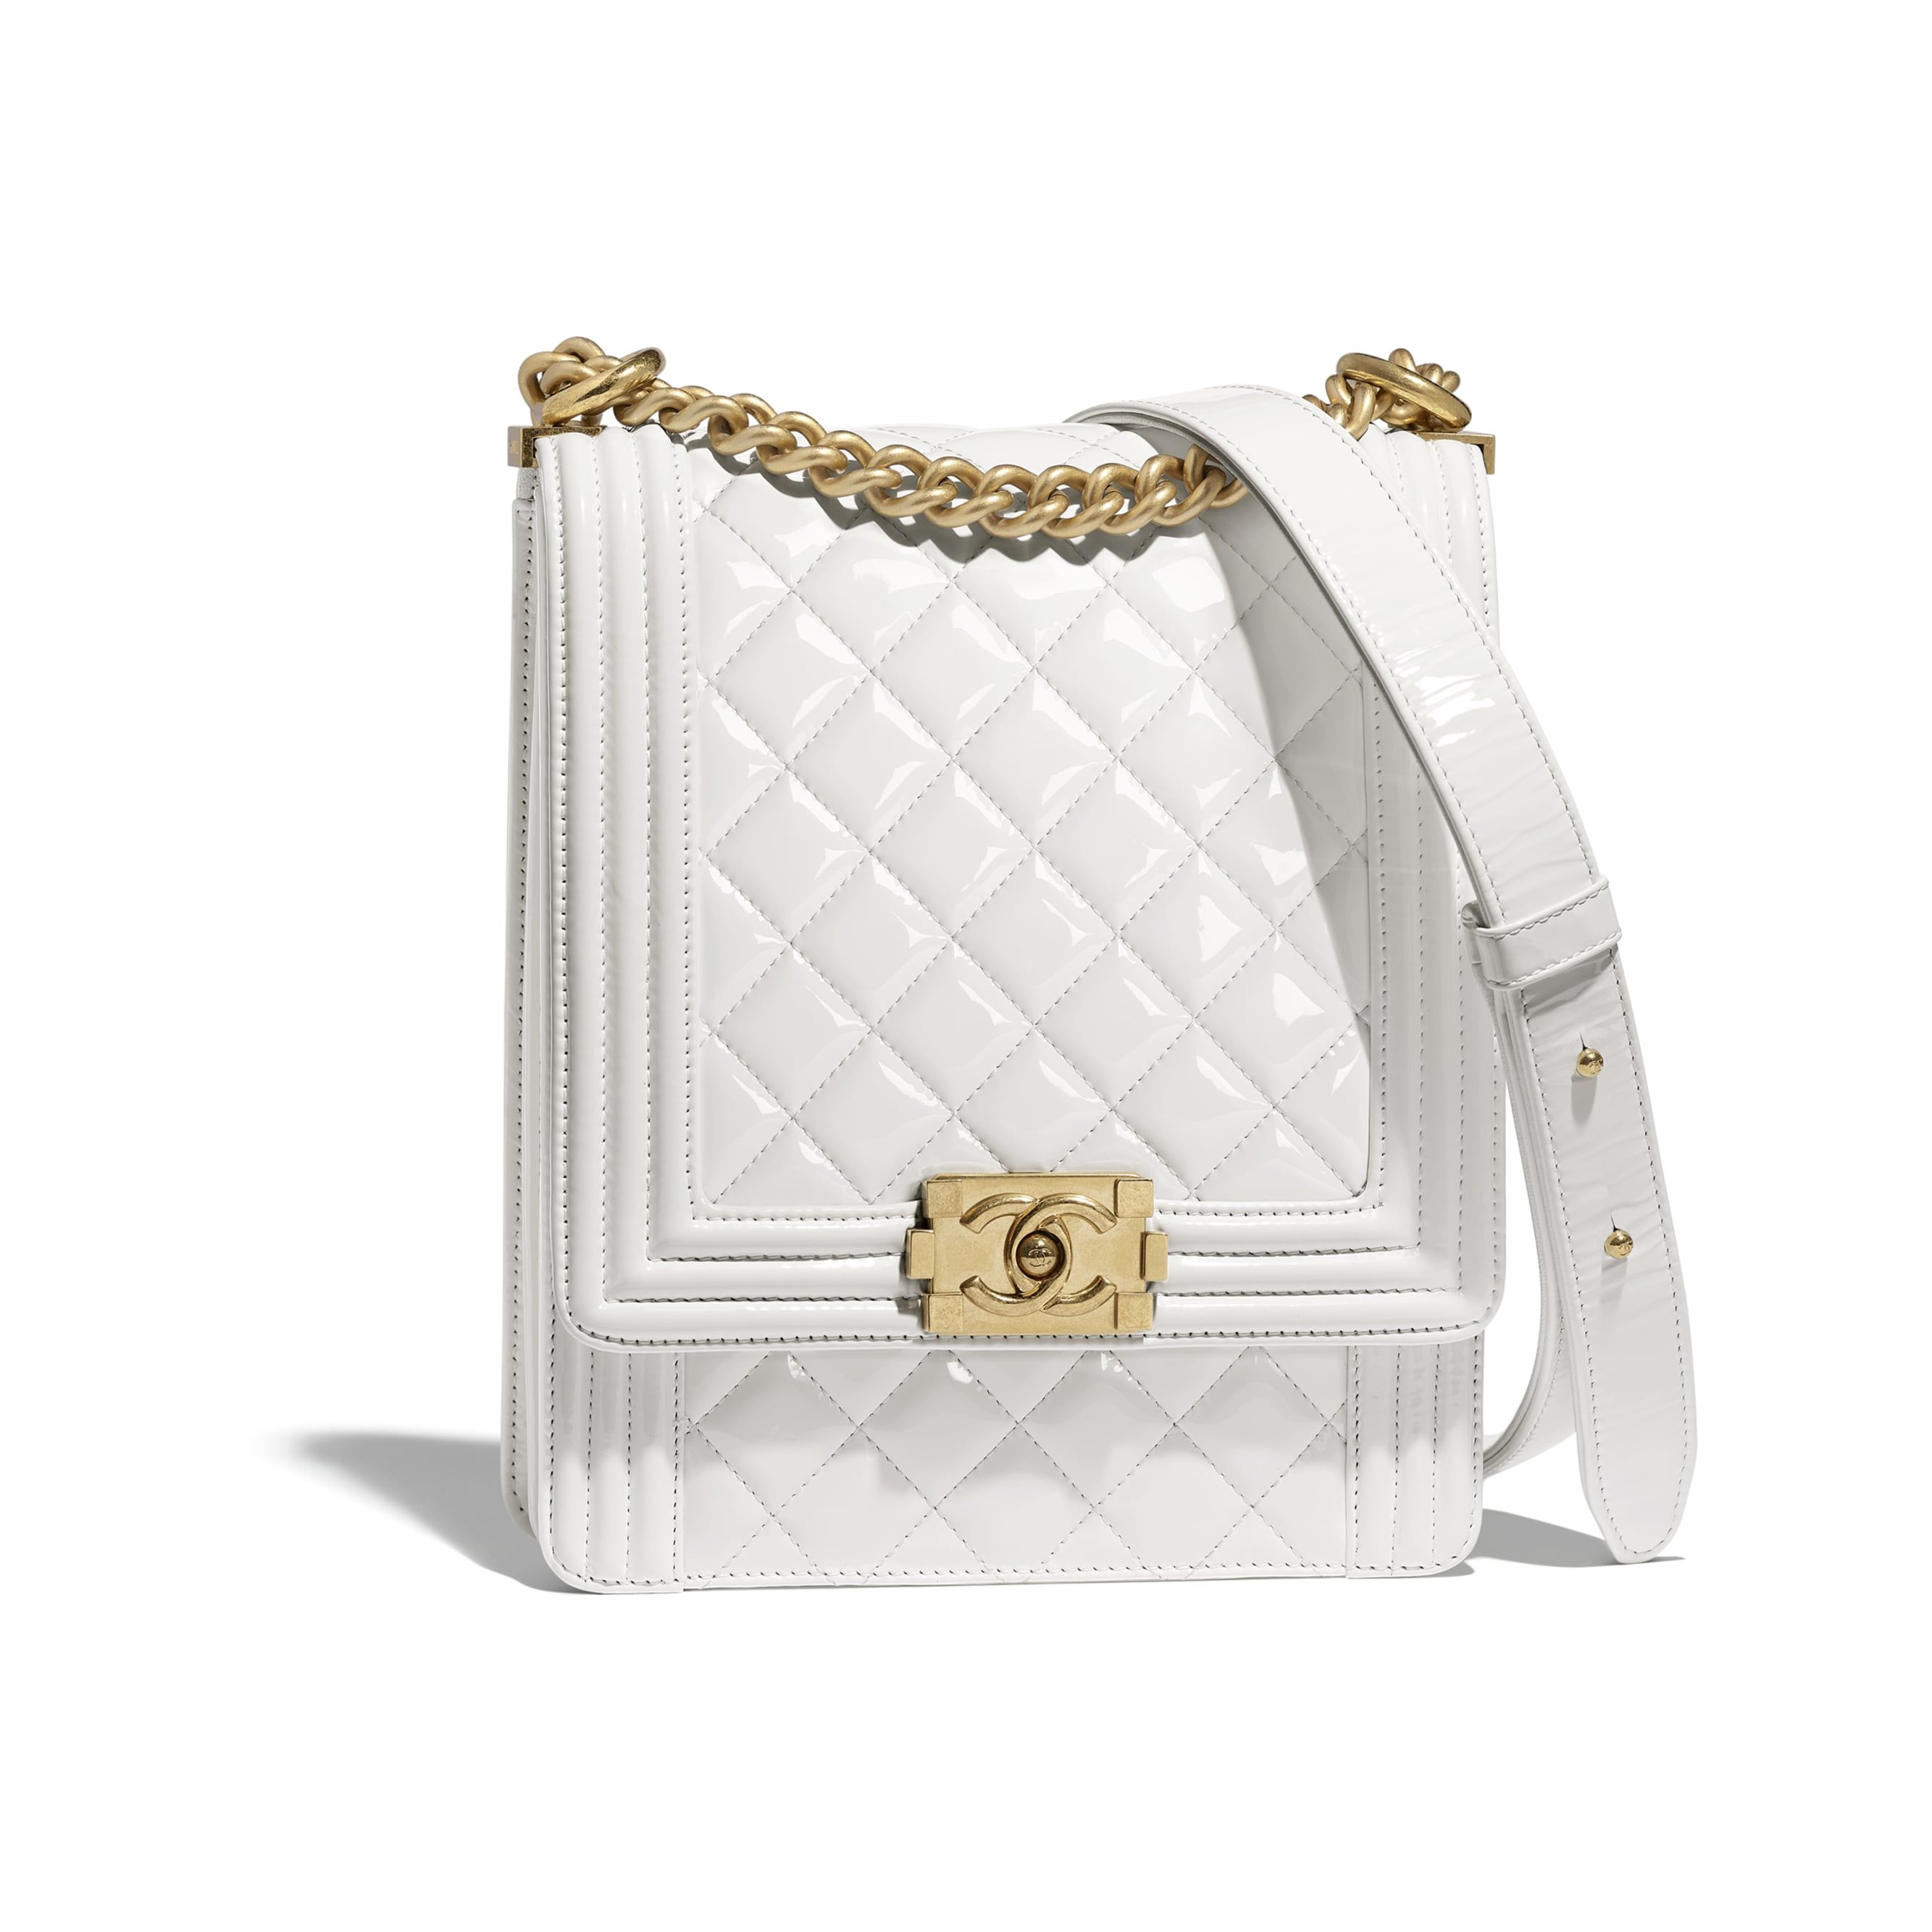 e67b010093c8c BOY CHANEL Handbag - White - Patent Calfskin   Gold-Tone Metal - Default  view - see standard sized version